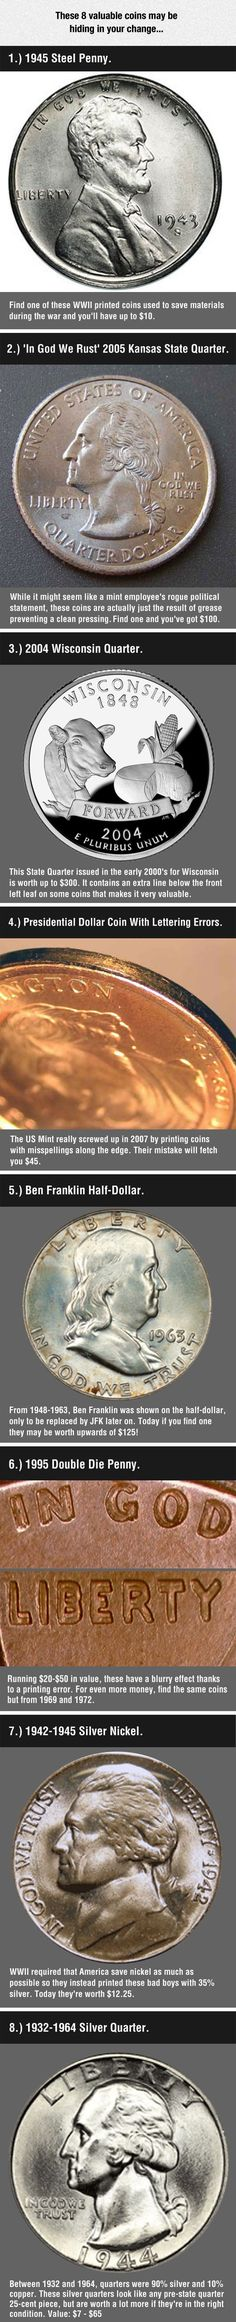 You Should Probably Check Your Change Right Now